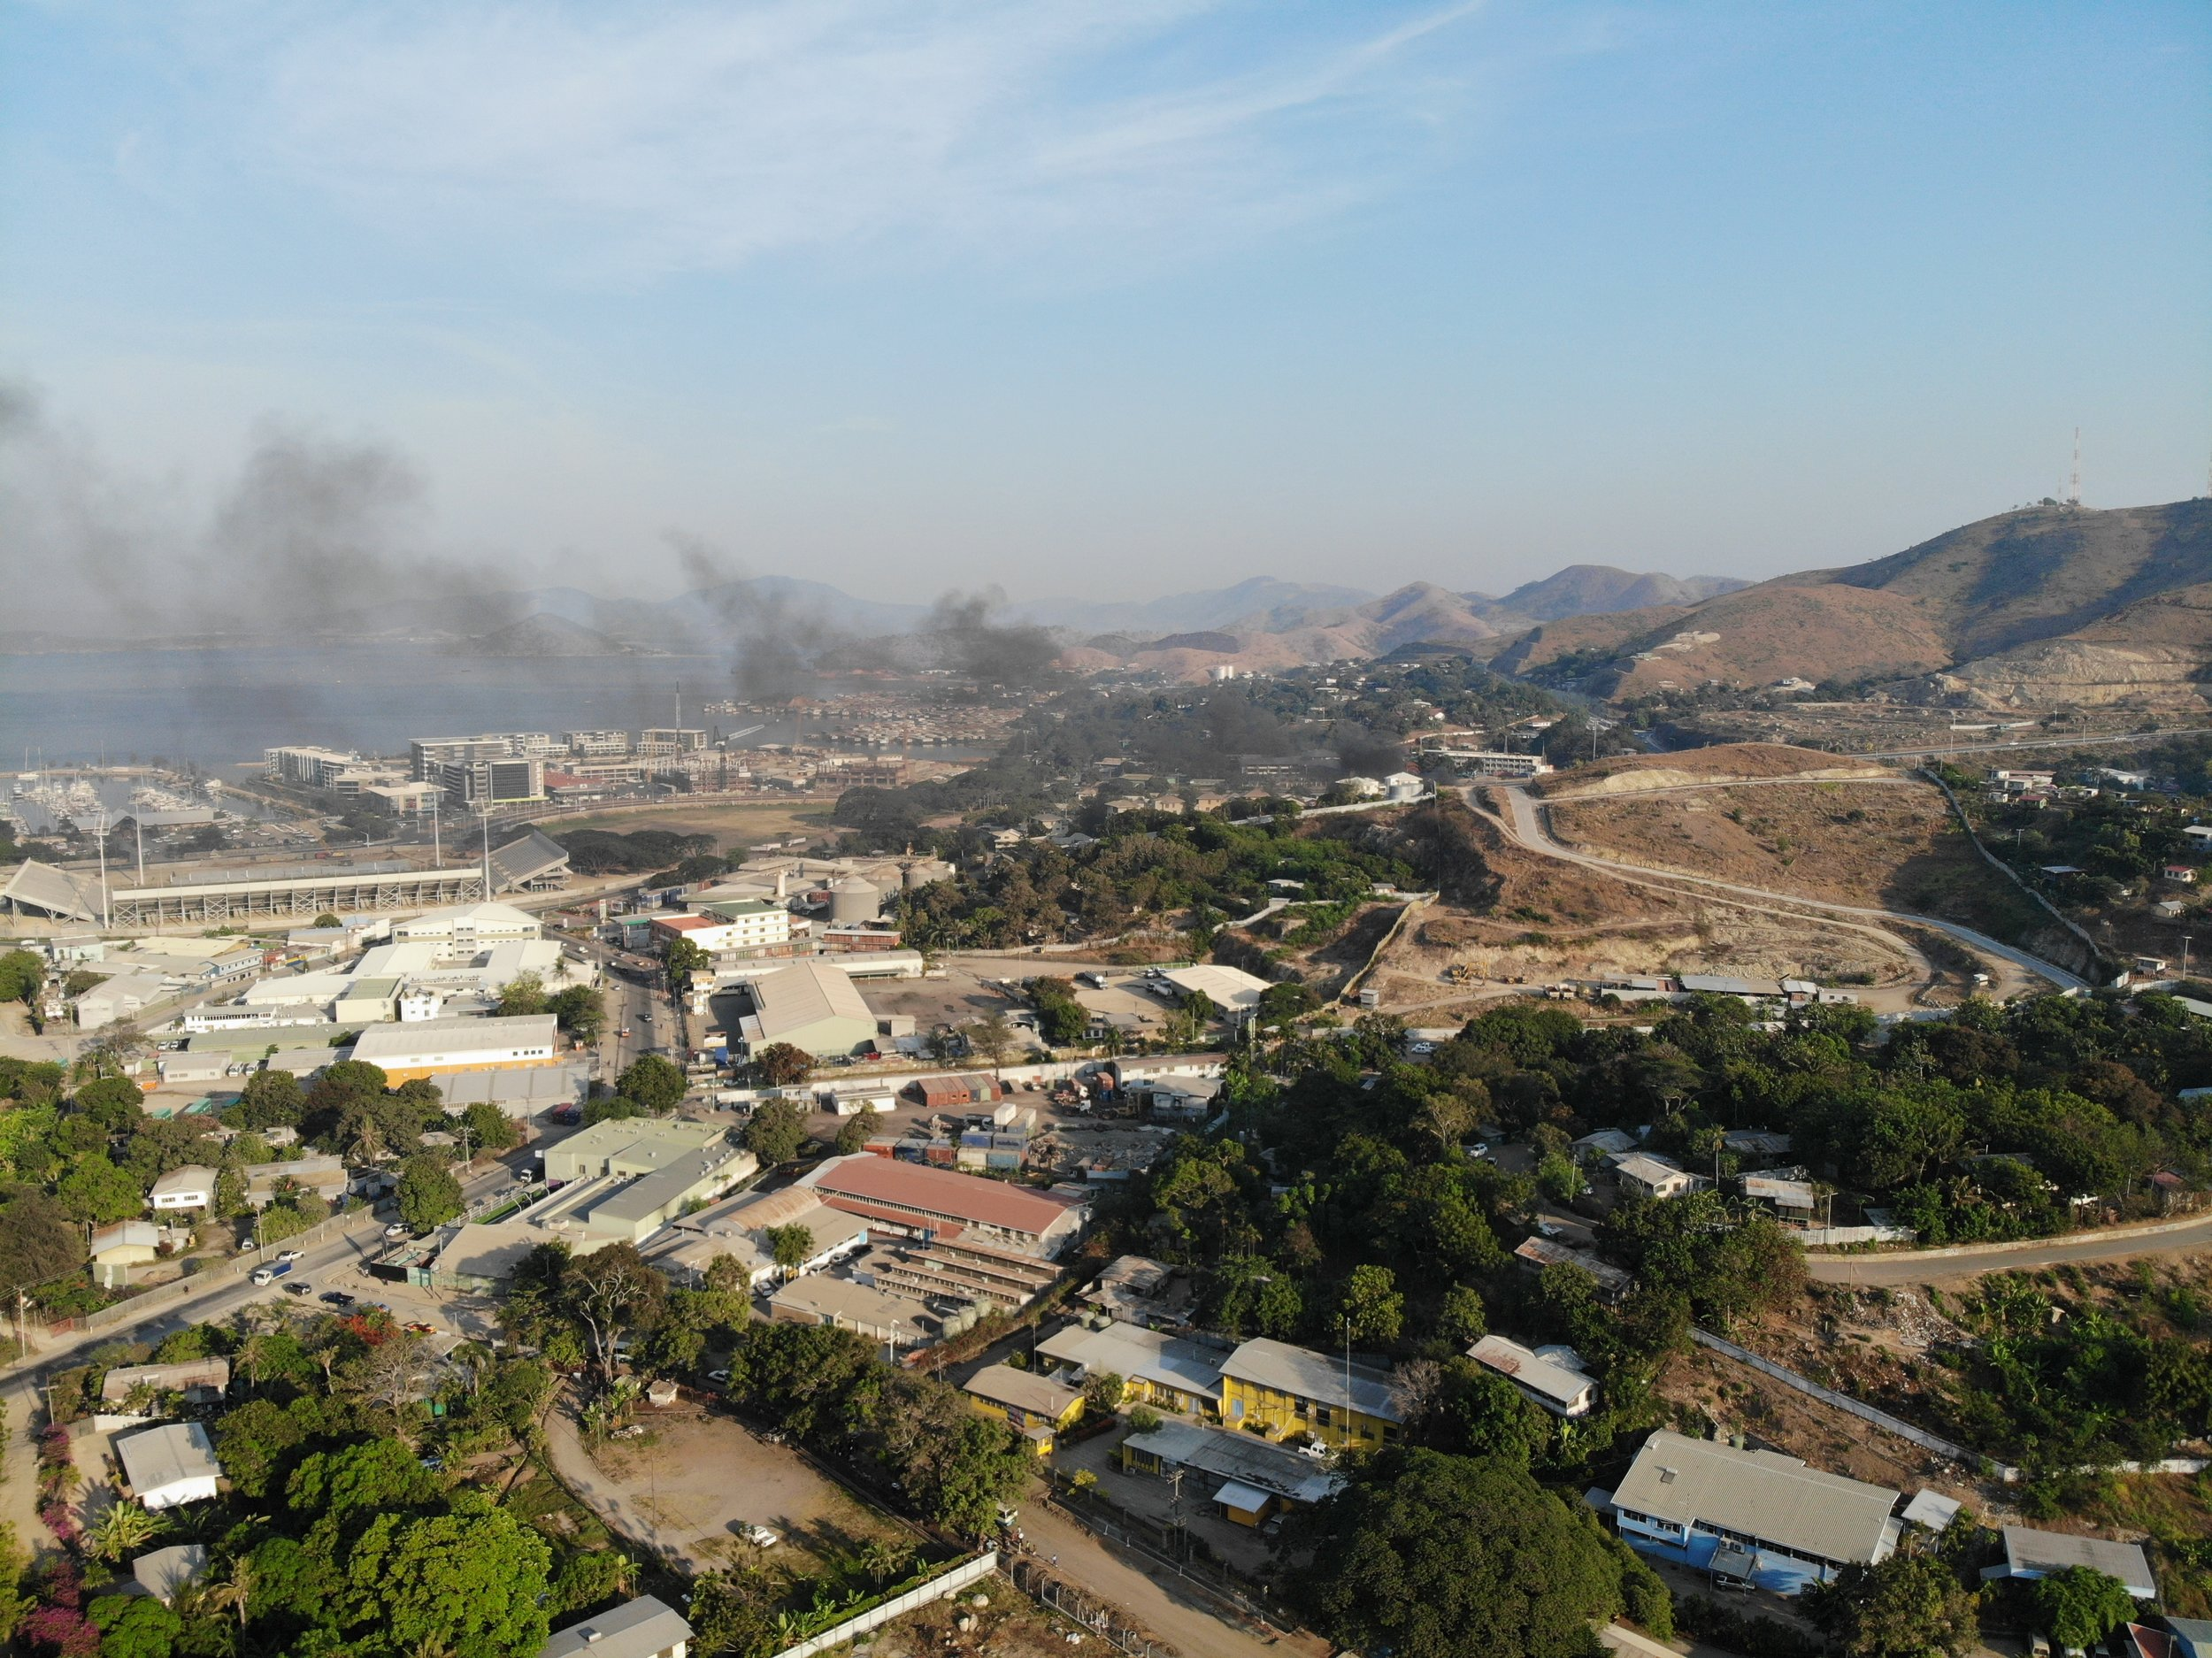 Port Moresby can shift from relaxed friendliness to violent intensity in an instant.